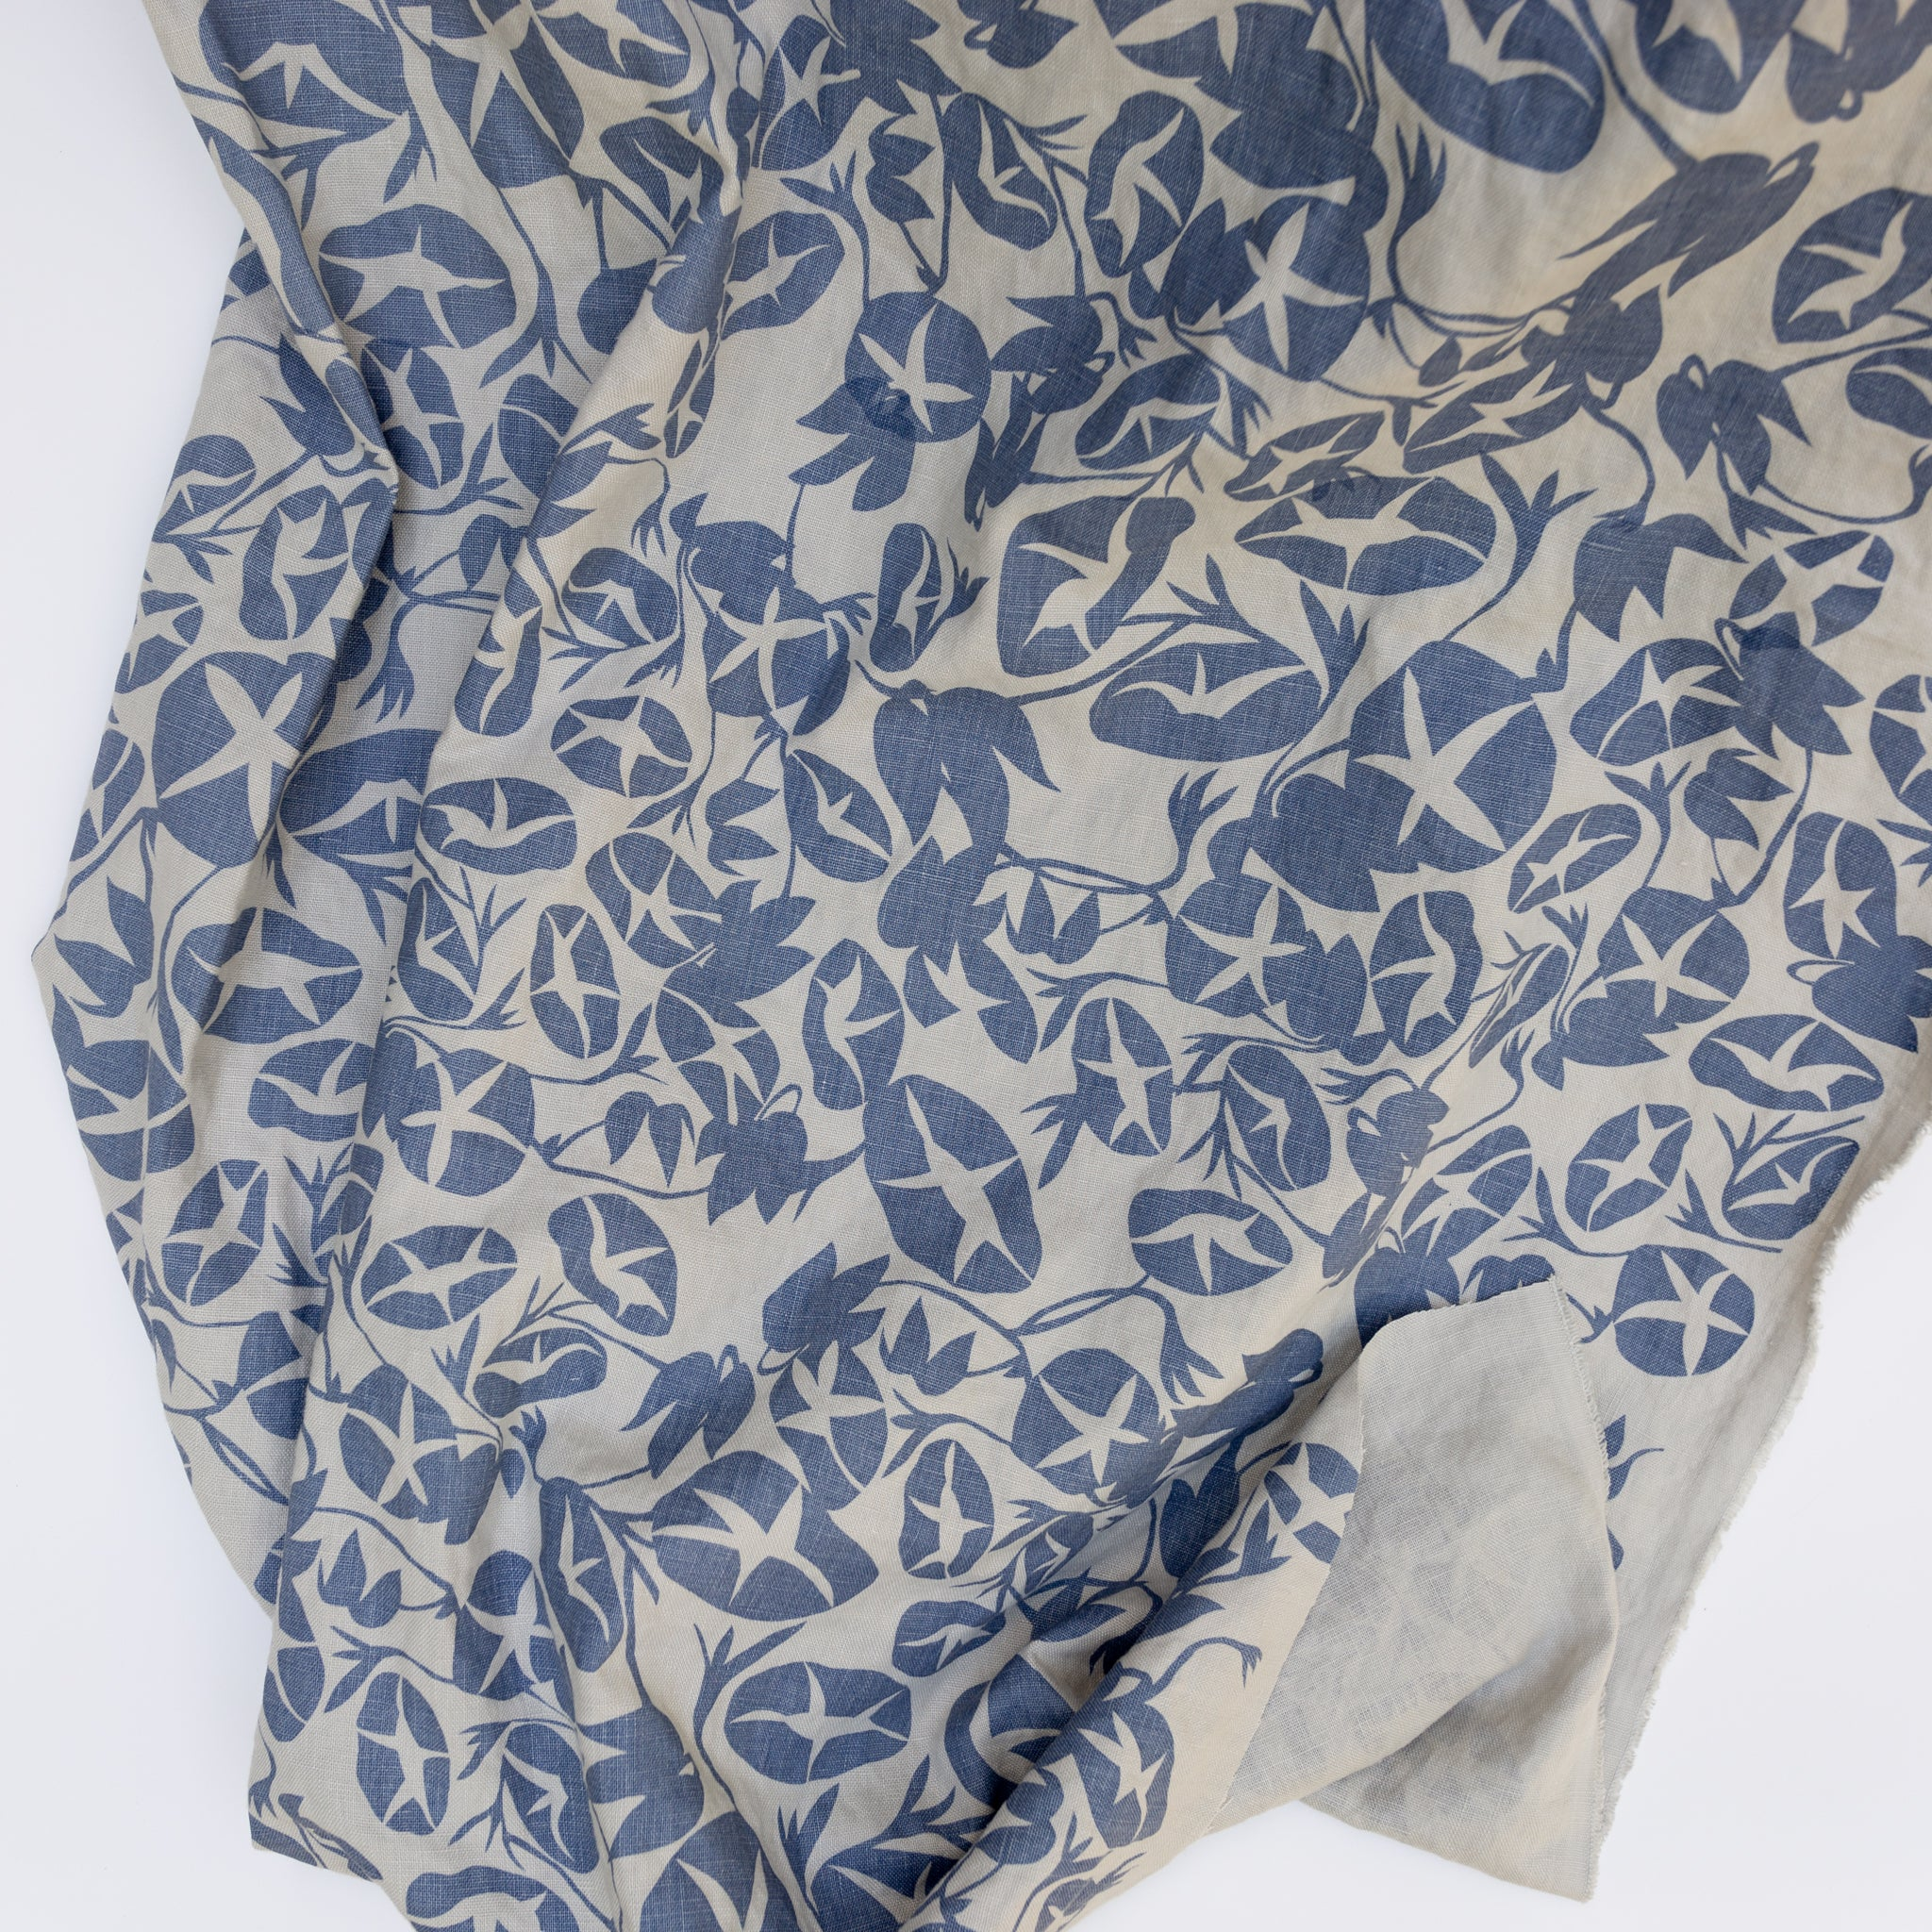 Screen printed fabric yardage with morning glory print